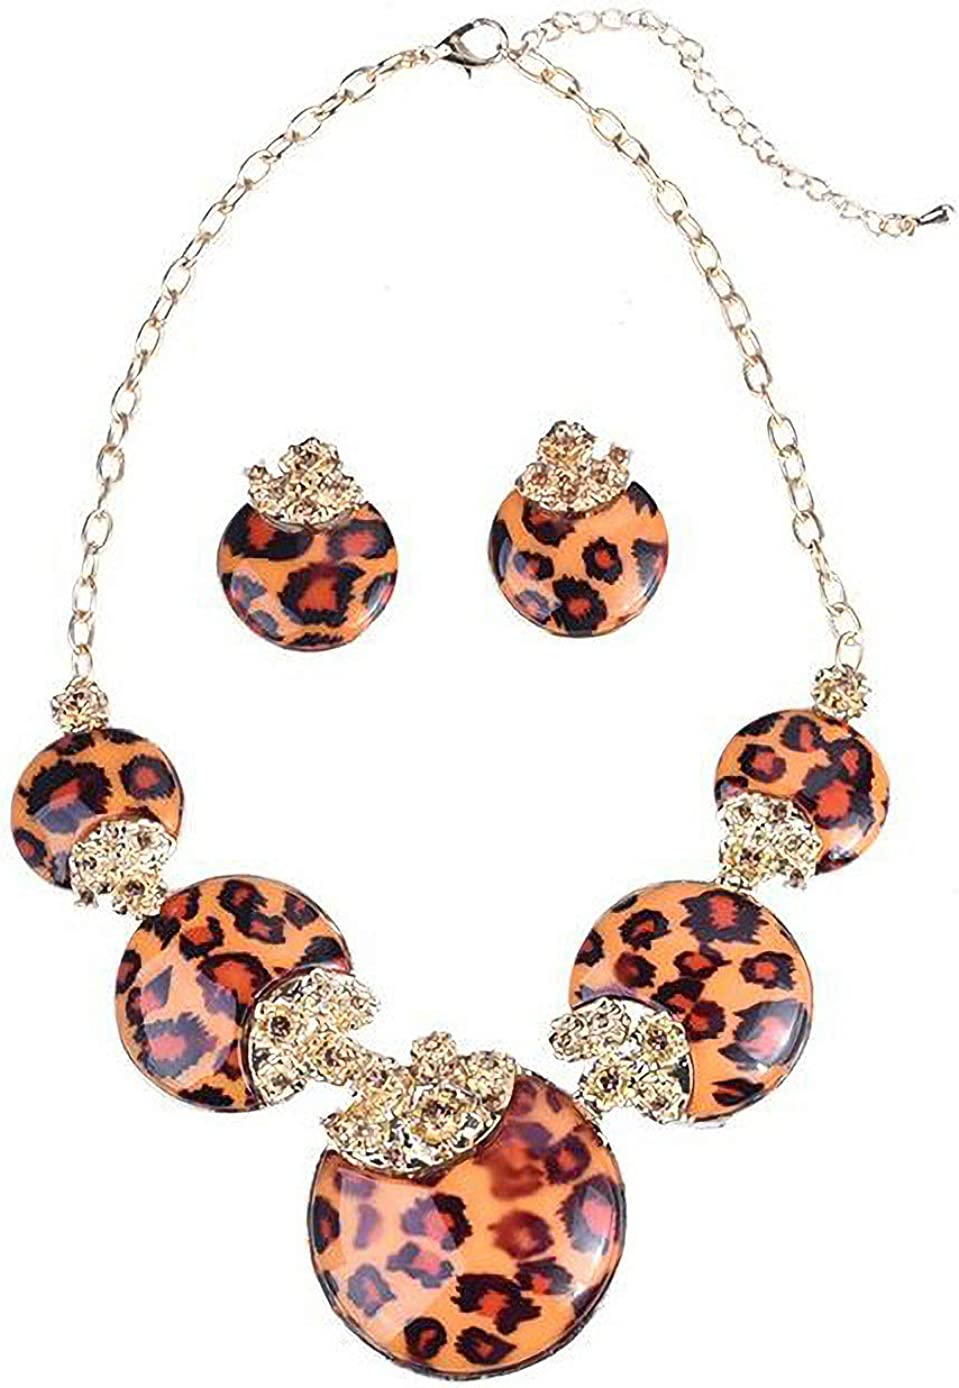 Fenni Vintage Leopard Print Round Pendant Choker Necklace and Earrings Sets Costume Jewelry for Women Bridal